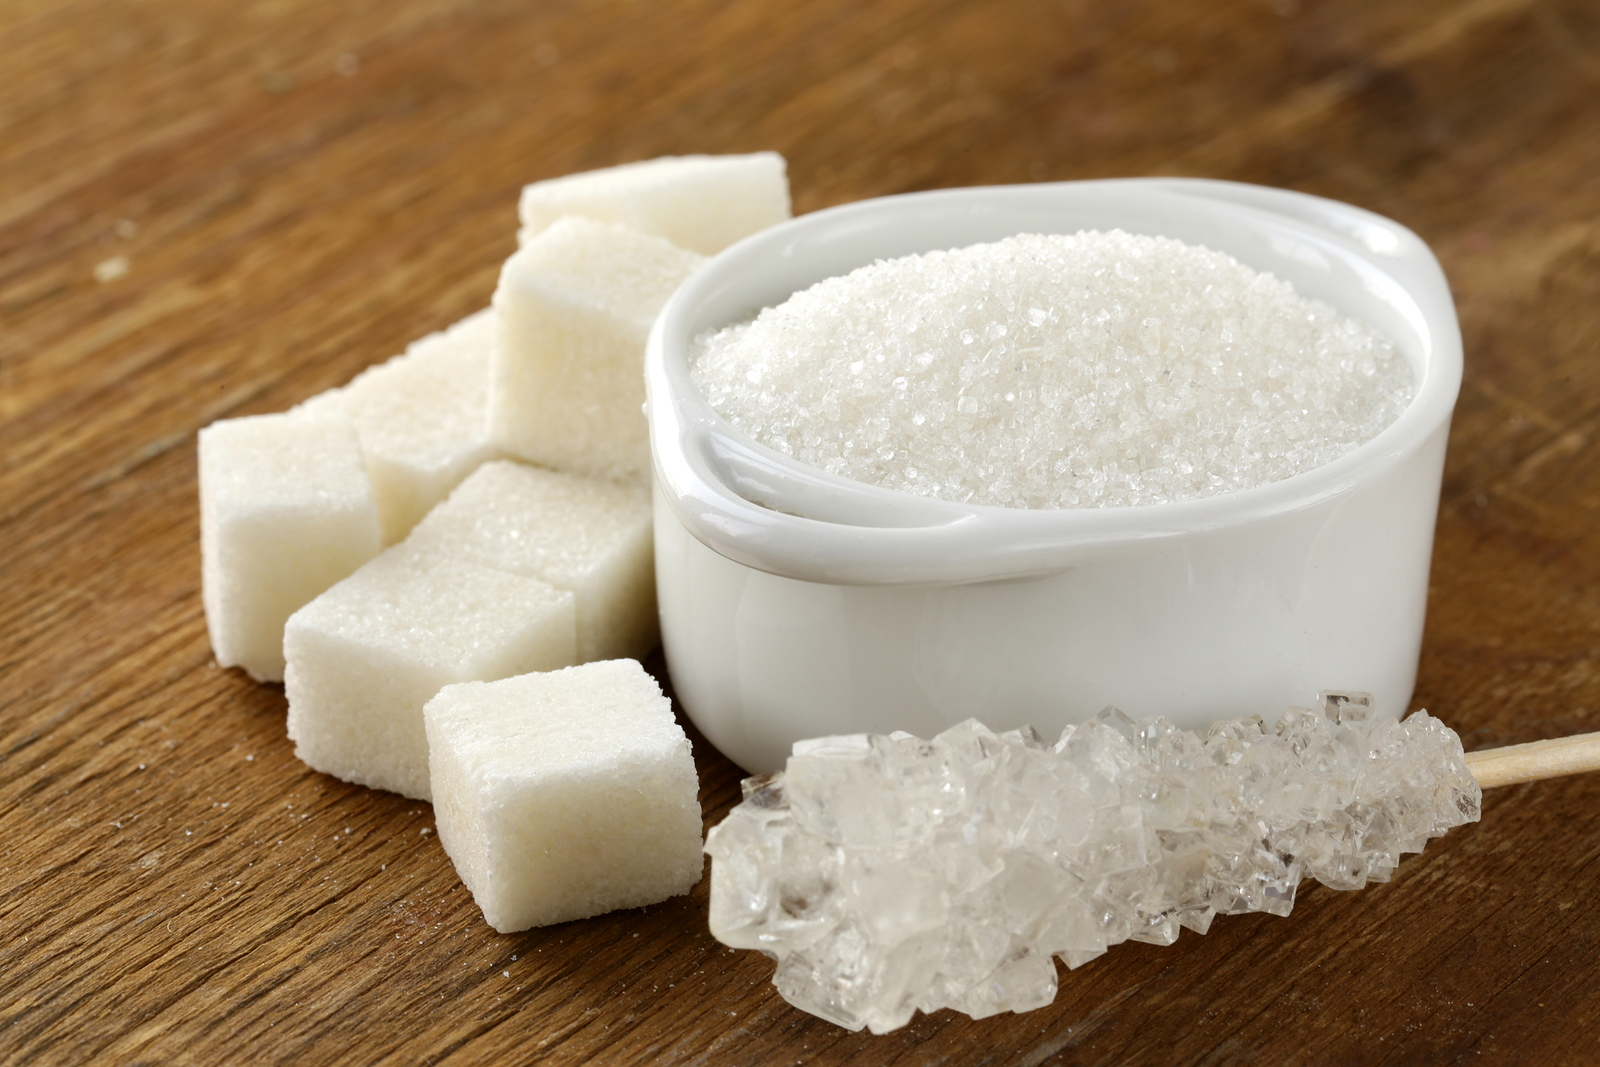 Several types of white sugar - refined sugar and granulated sugar ** Note: Shallow depth of field